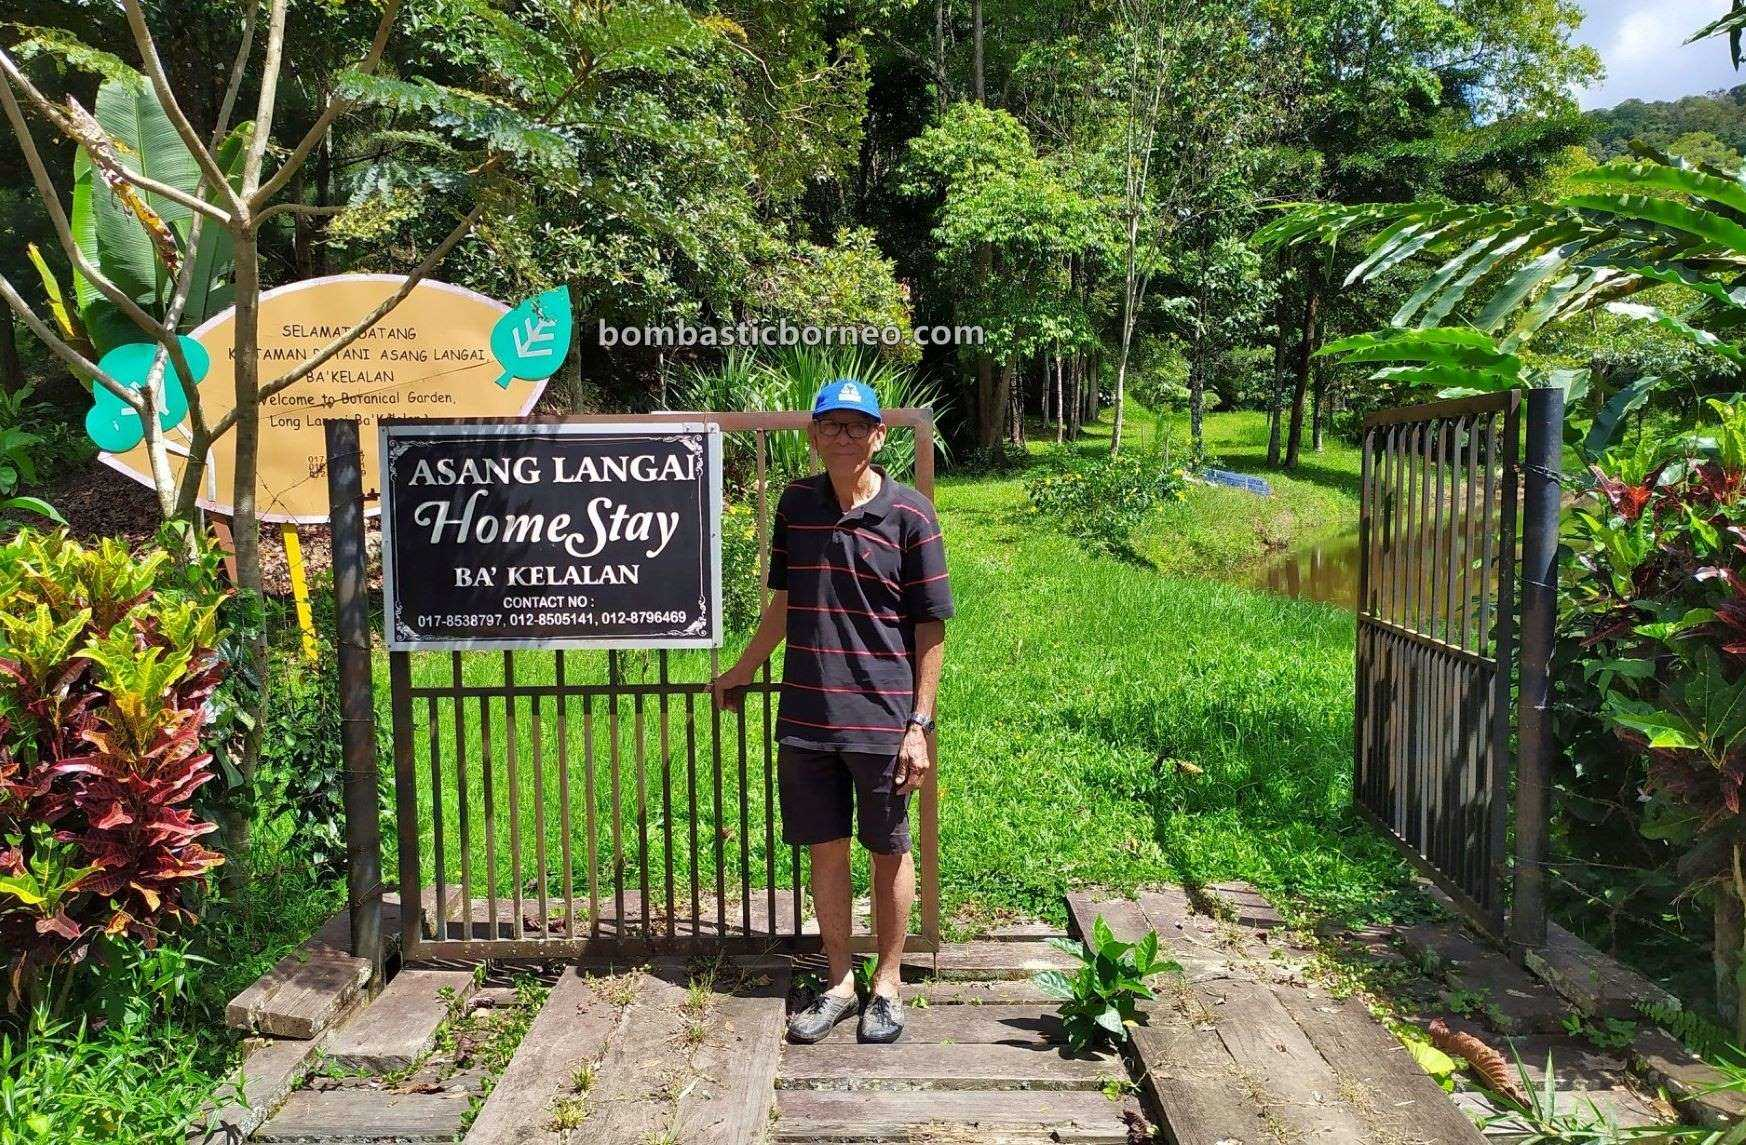 homestay, accommodation, nature, outdoor, Herbal Plant, destination, Malaysia, Lun Bawang, Ecotourism, tourist attraction, Travel Guide, Trans Borneo, 跨境婆罗洲游踪, 马来西亚砂拉越, 巴卡拉兰高原民宿,